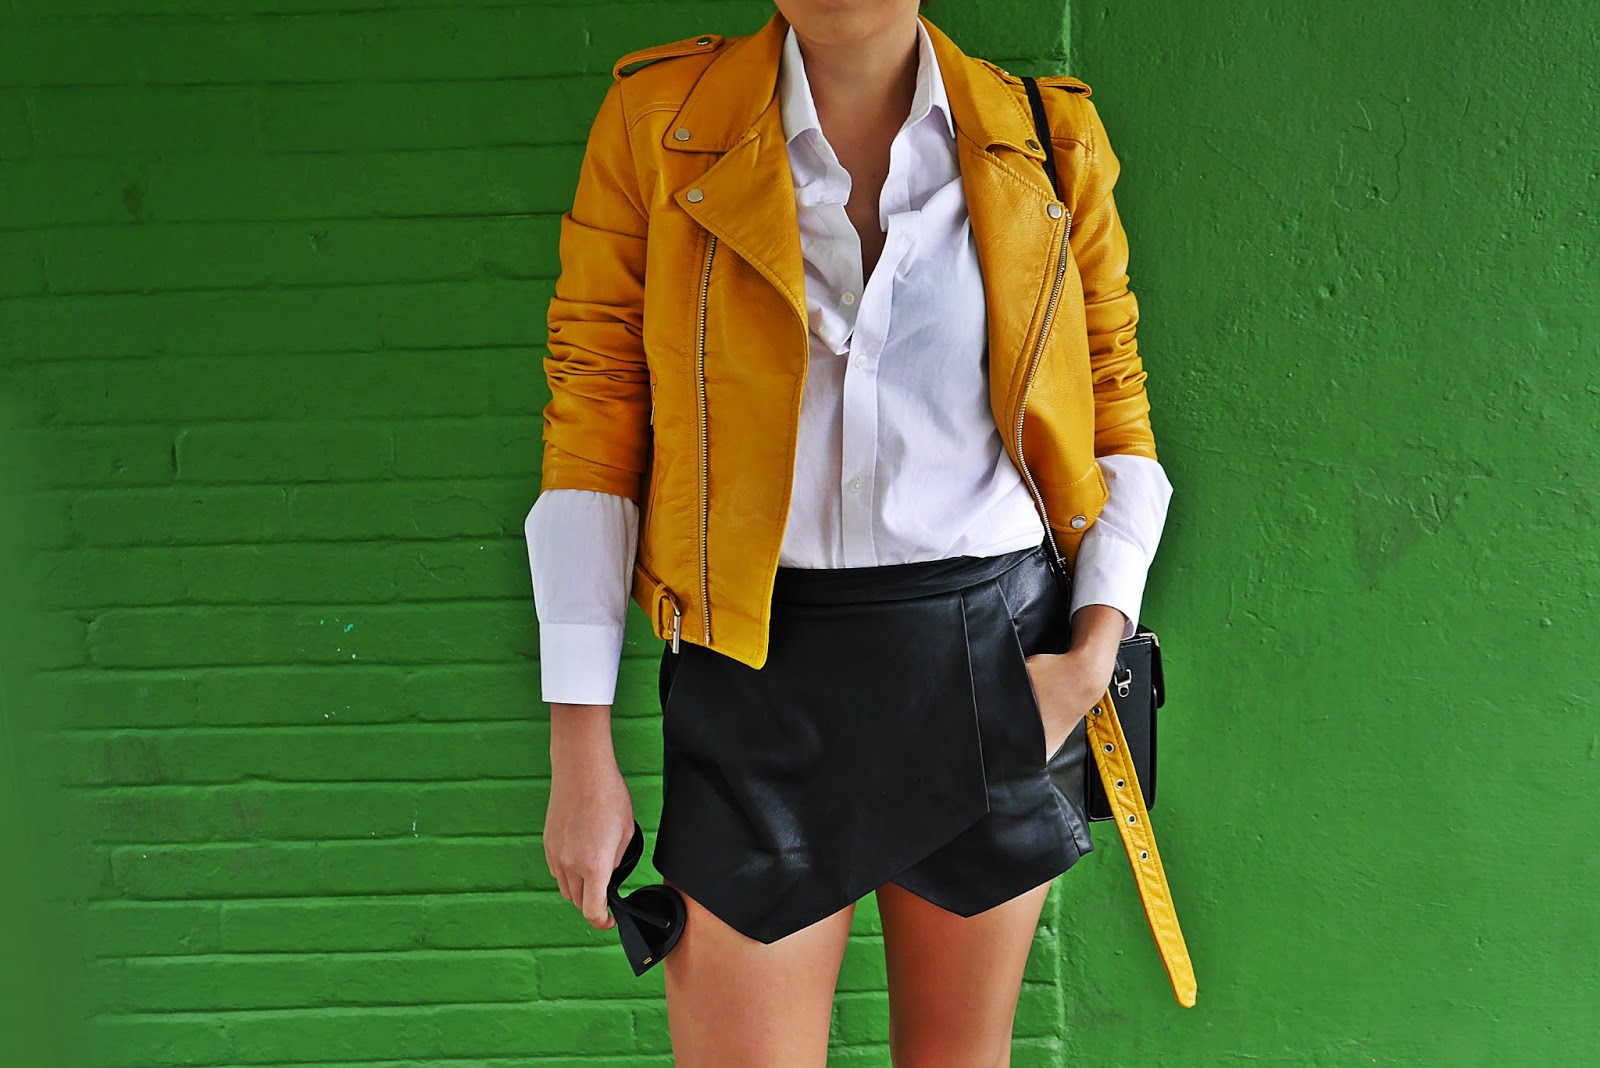 10_yellow_biker_jacket_zara_shorts_white_shirt_renee_cut_out_boots_karyn_blog_modowy_180817